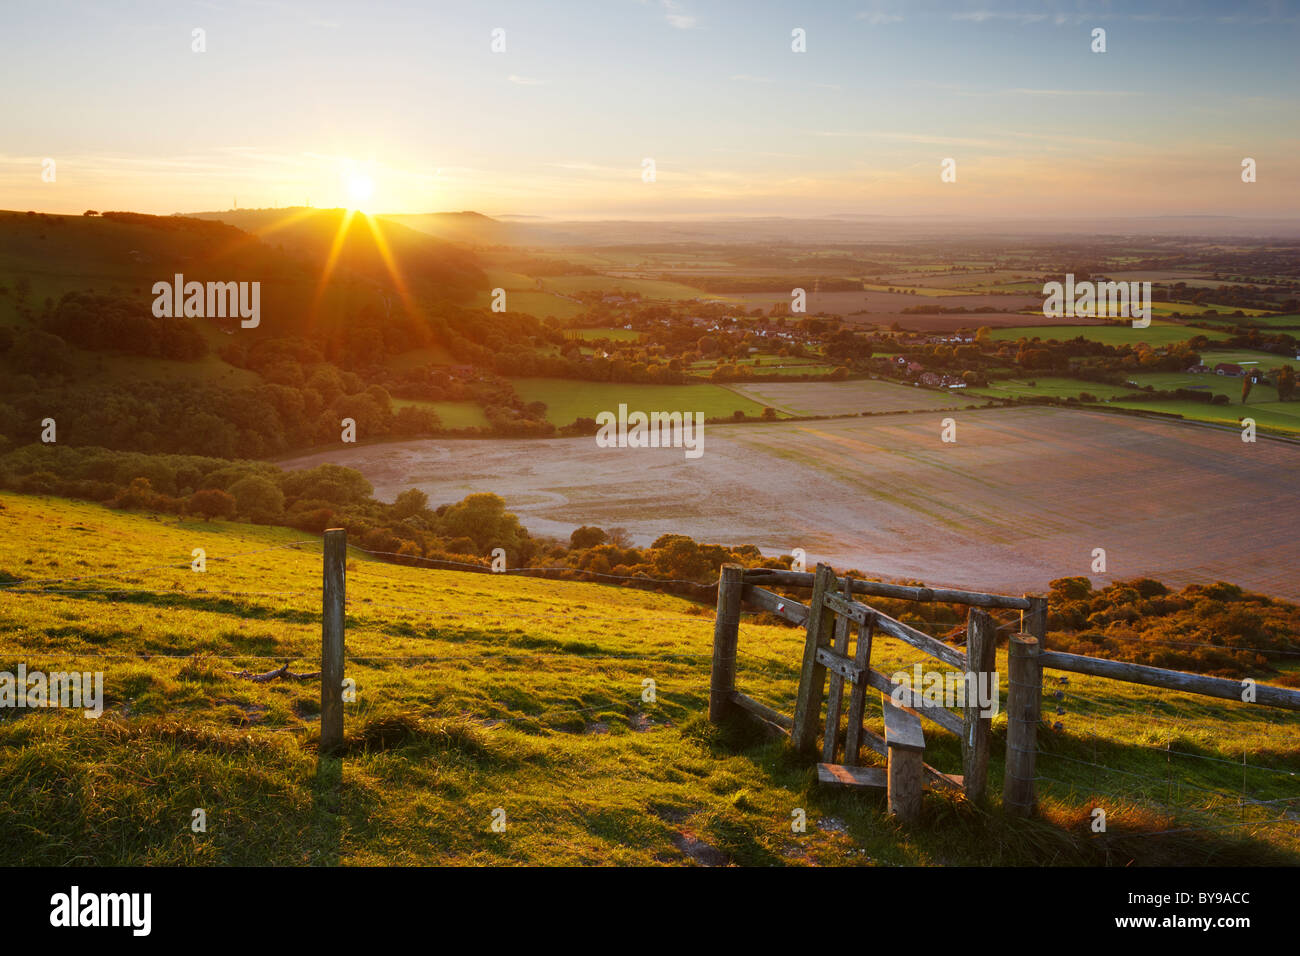 Stile with views across the West Sussex countryside. The evening sun making its descent behind the undulating Hillside. - Stock Image